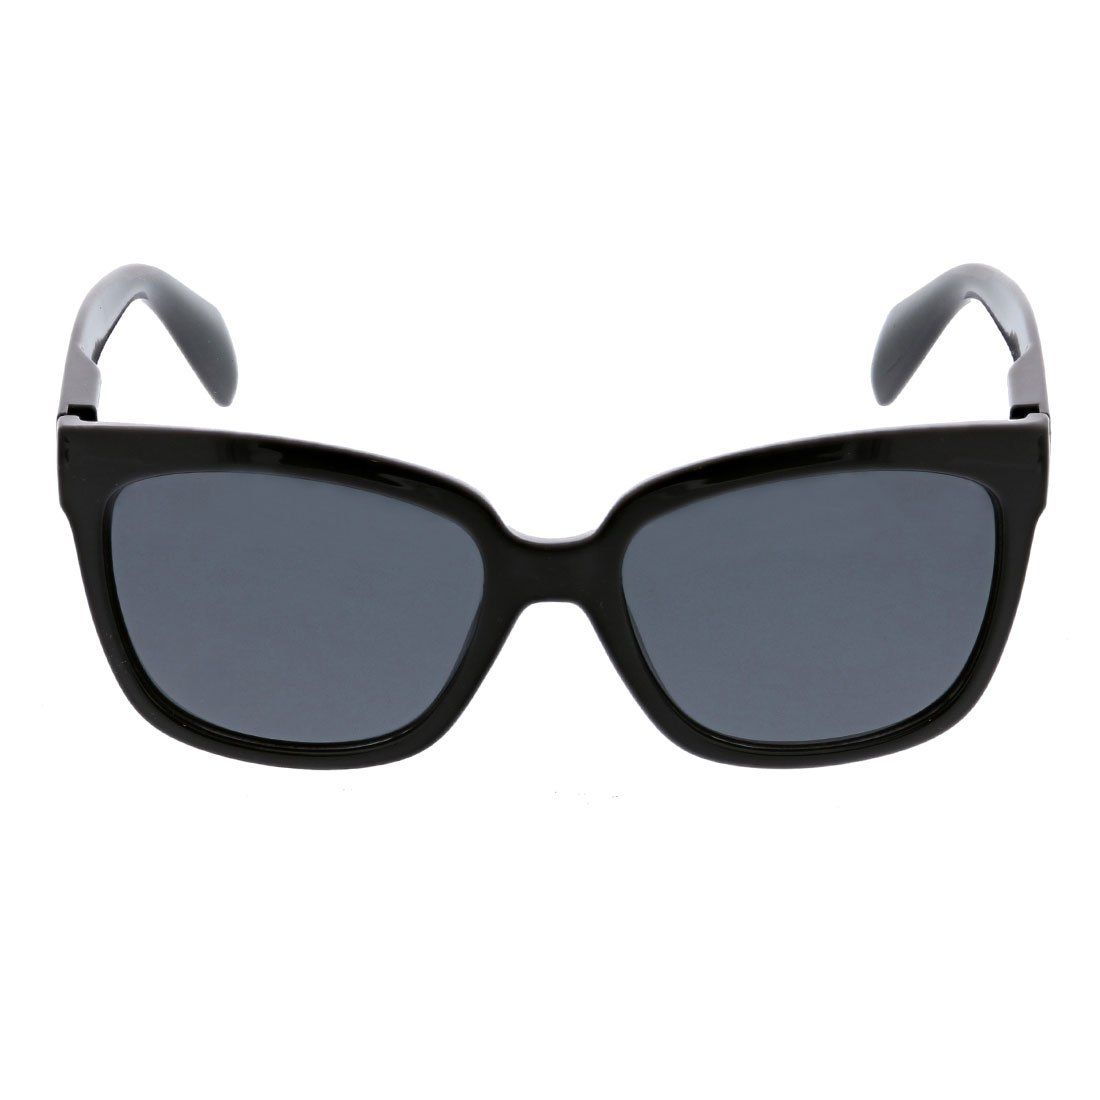 c93a16bab7 This modern classic look gets an update with a bold design featuring thick  arms